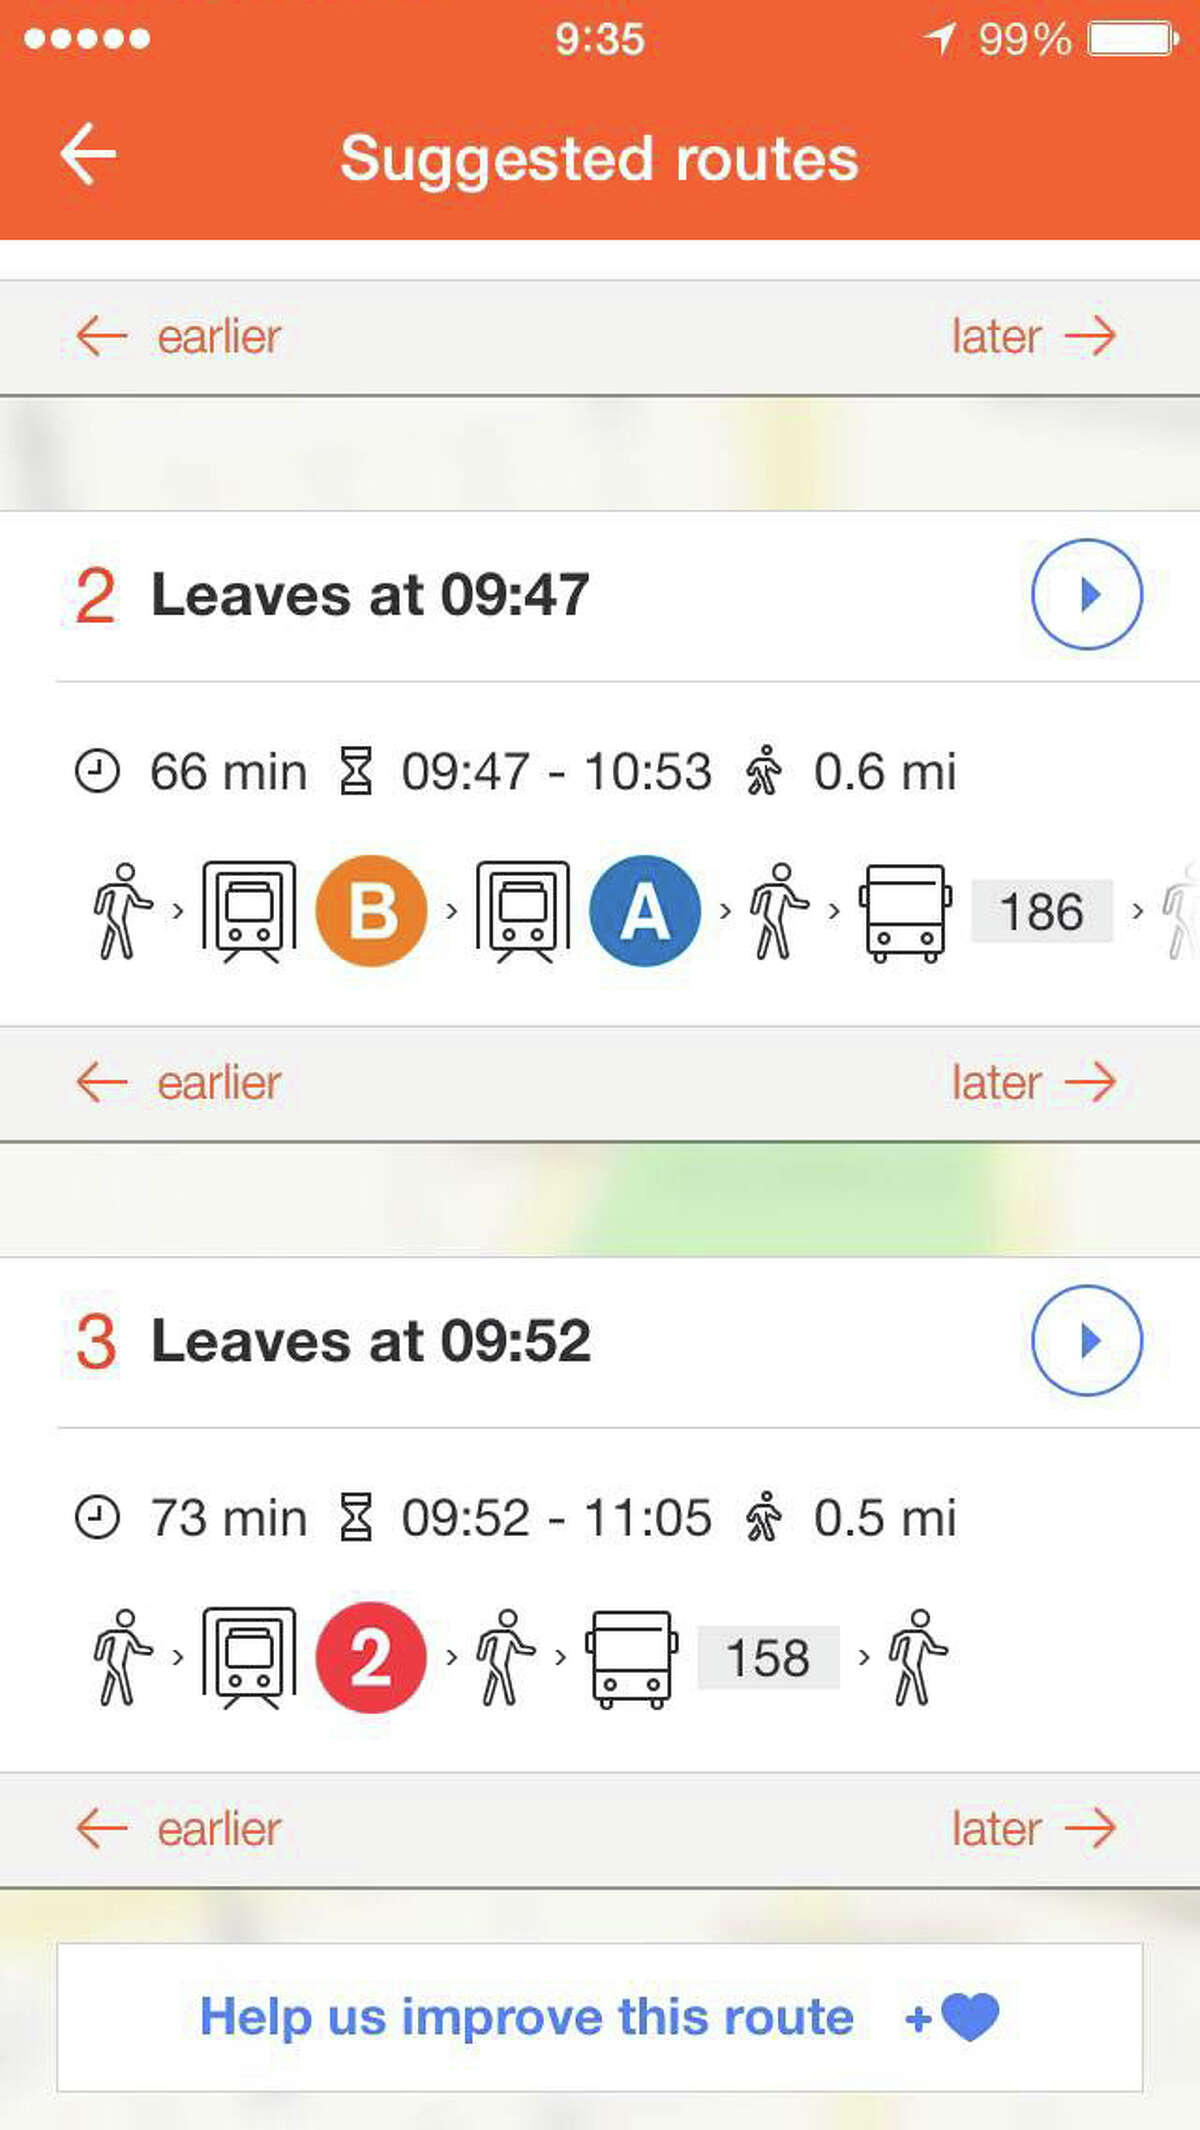 Moovit, which provides crowd-sourced